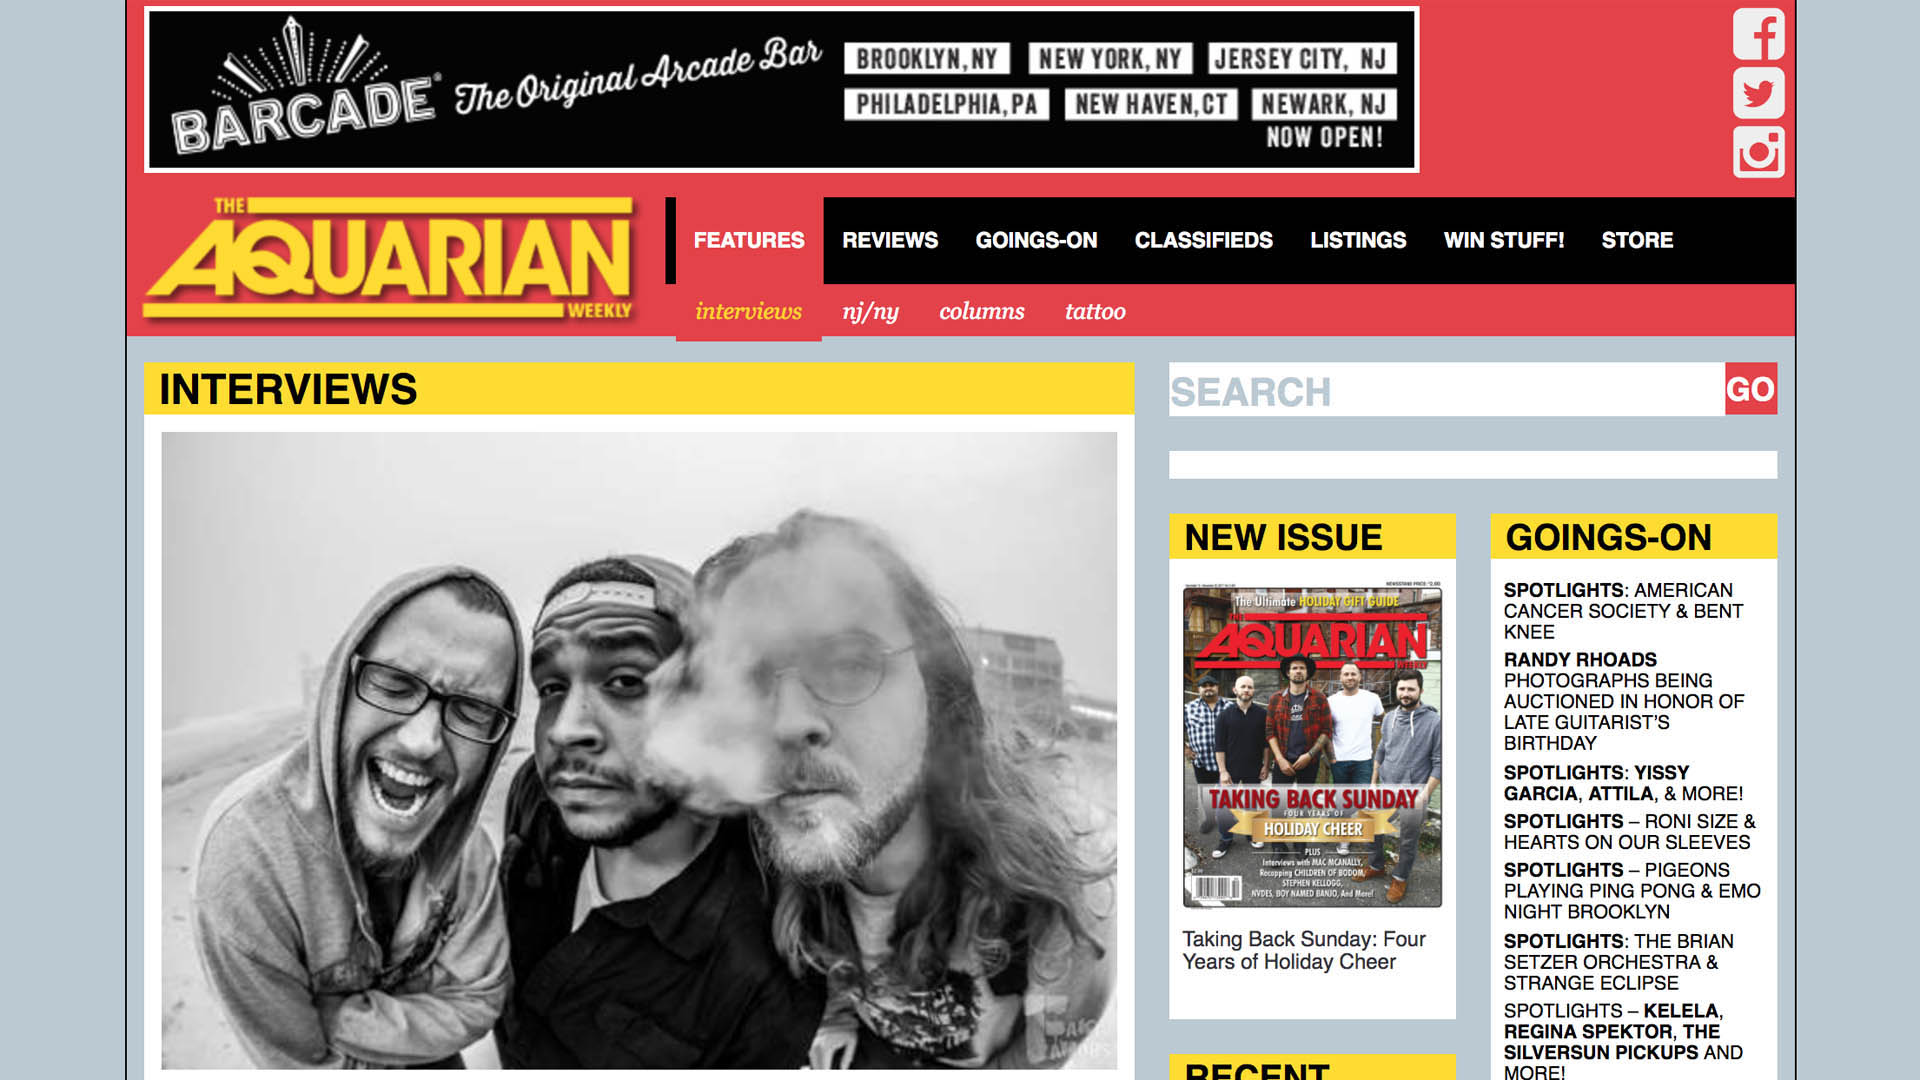 http://www.theaquarian.com/2017/02/01/an-interview-with-p-funk-north-keeping-the-good-vibes-alive/